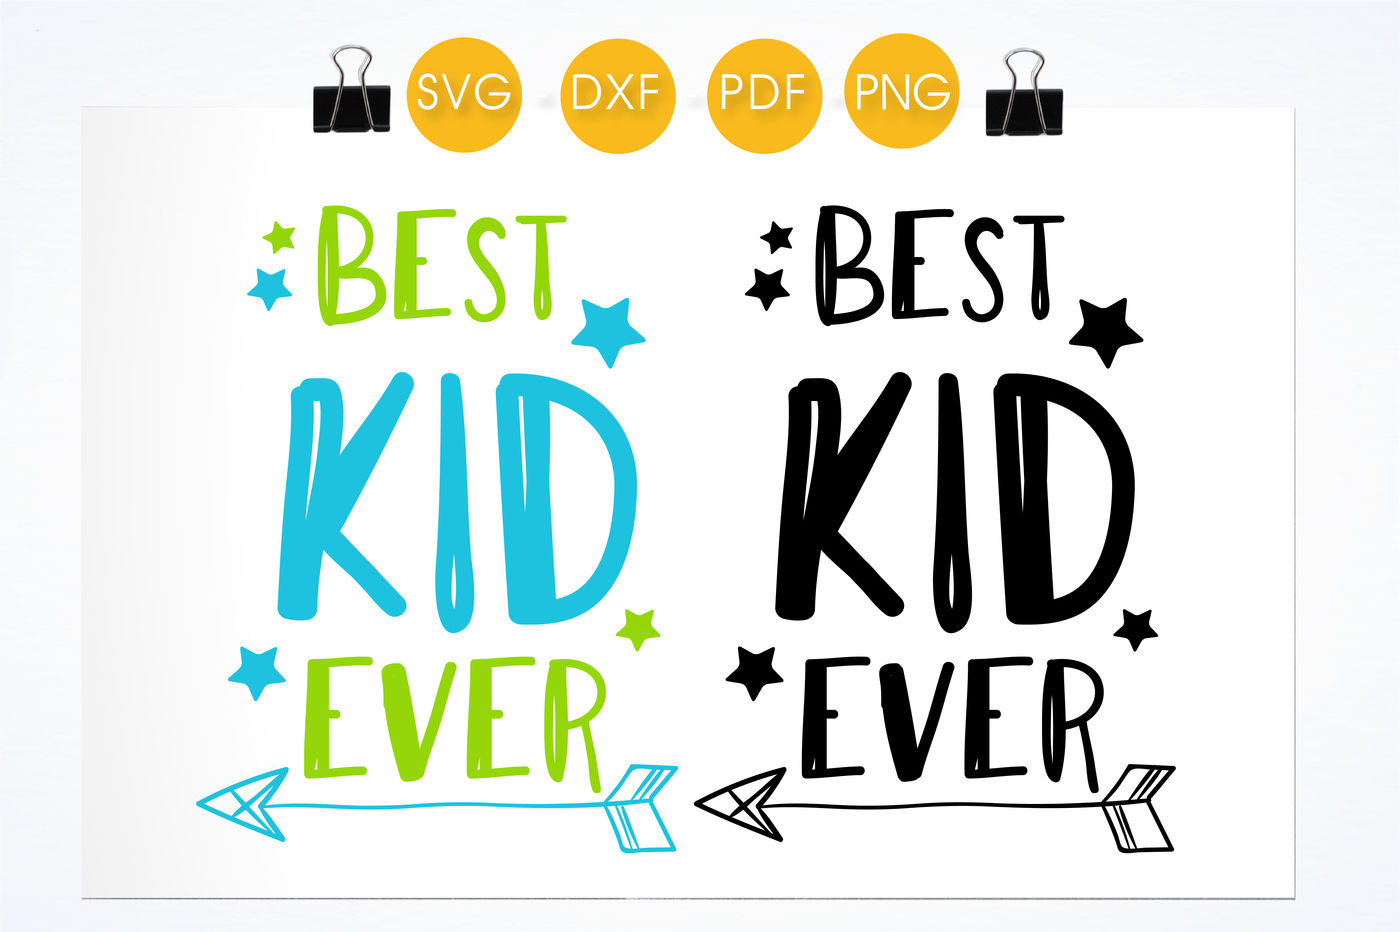 Best Kid Ever Svg Png Eps Dxf Cut File By Prettycuttables